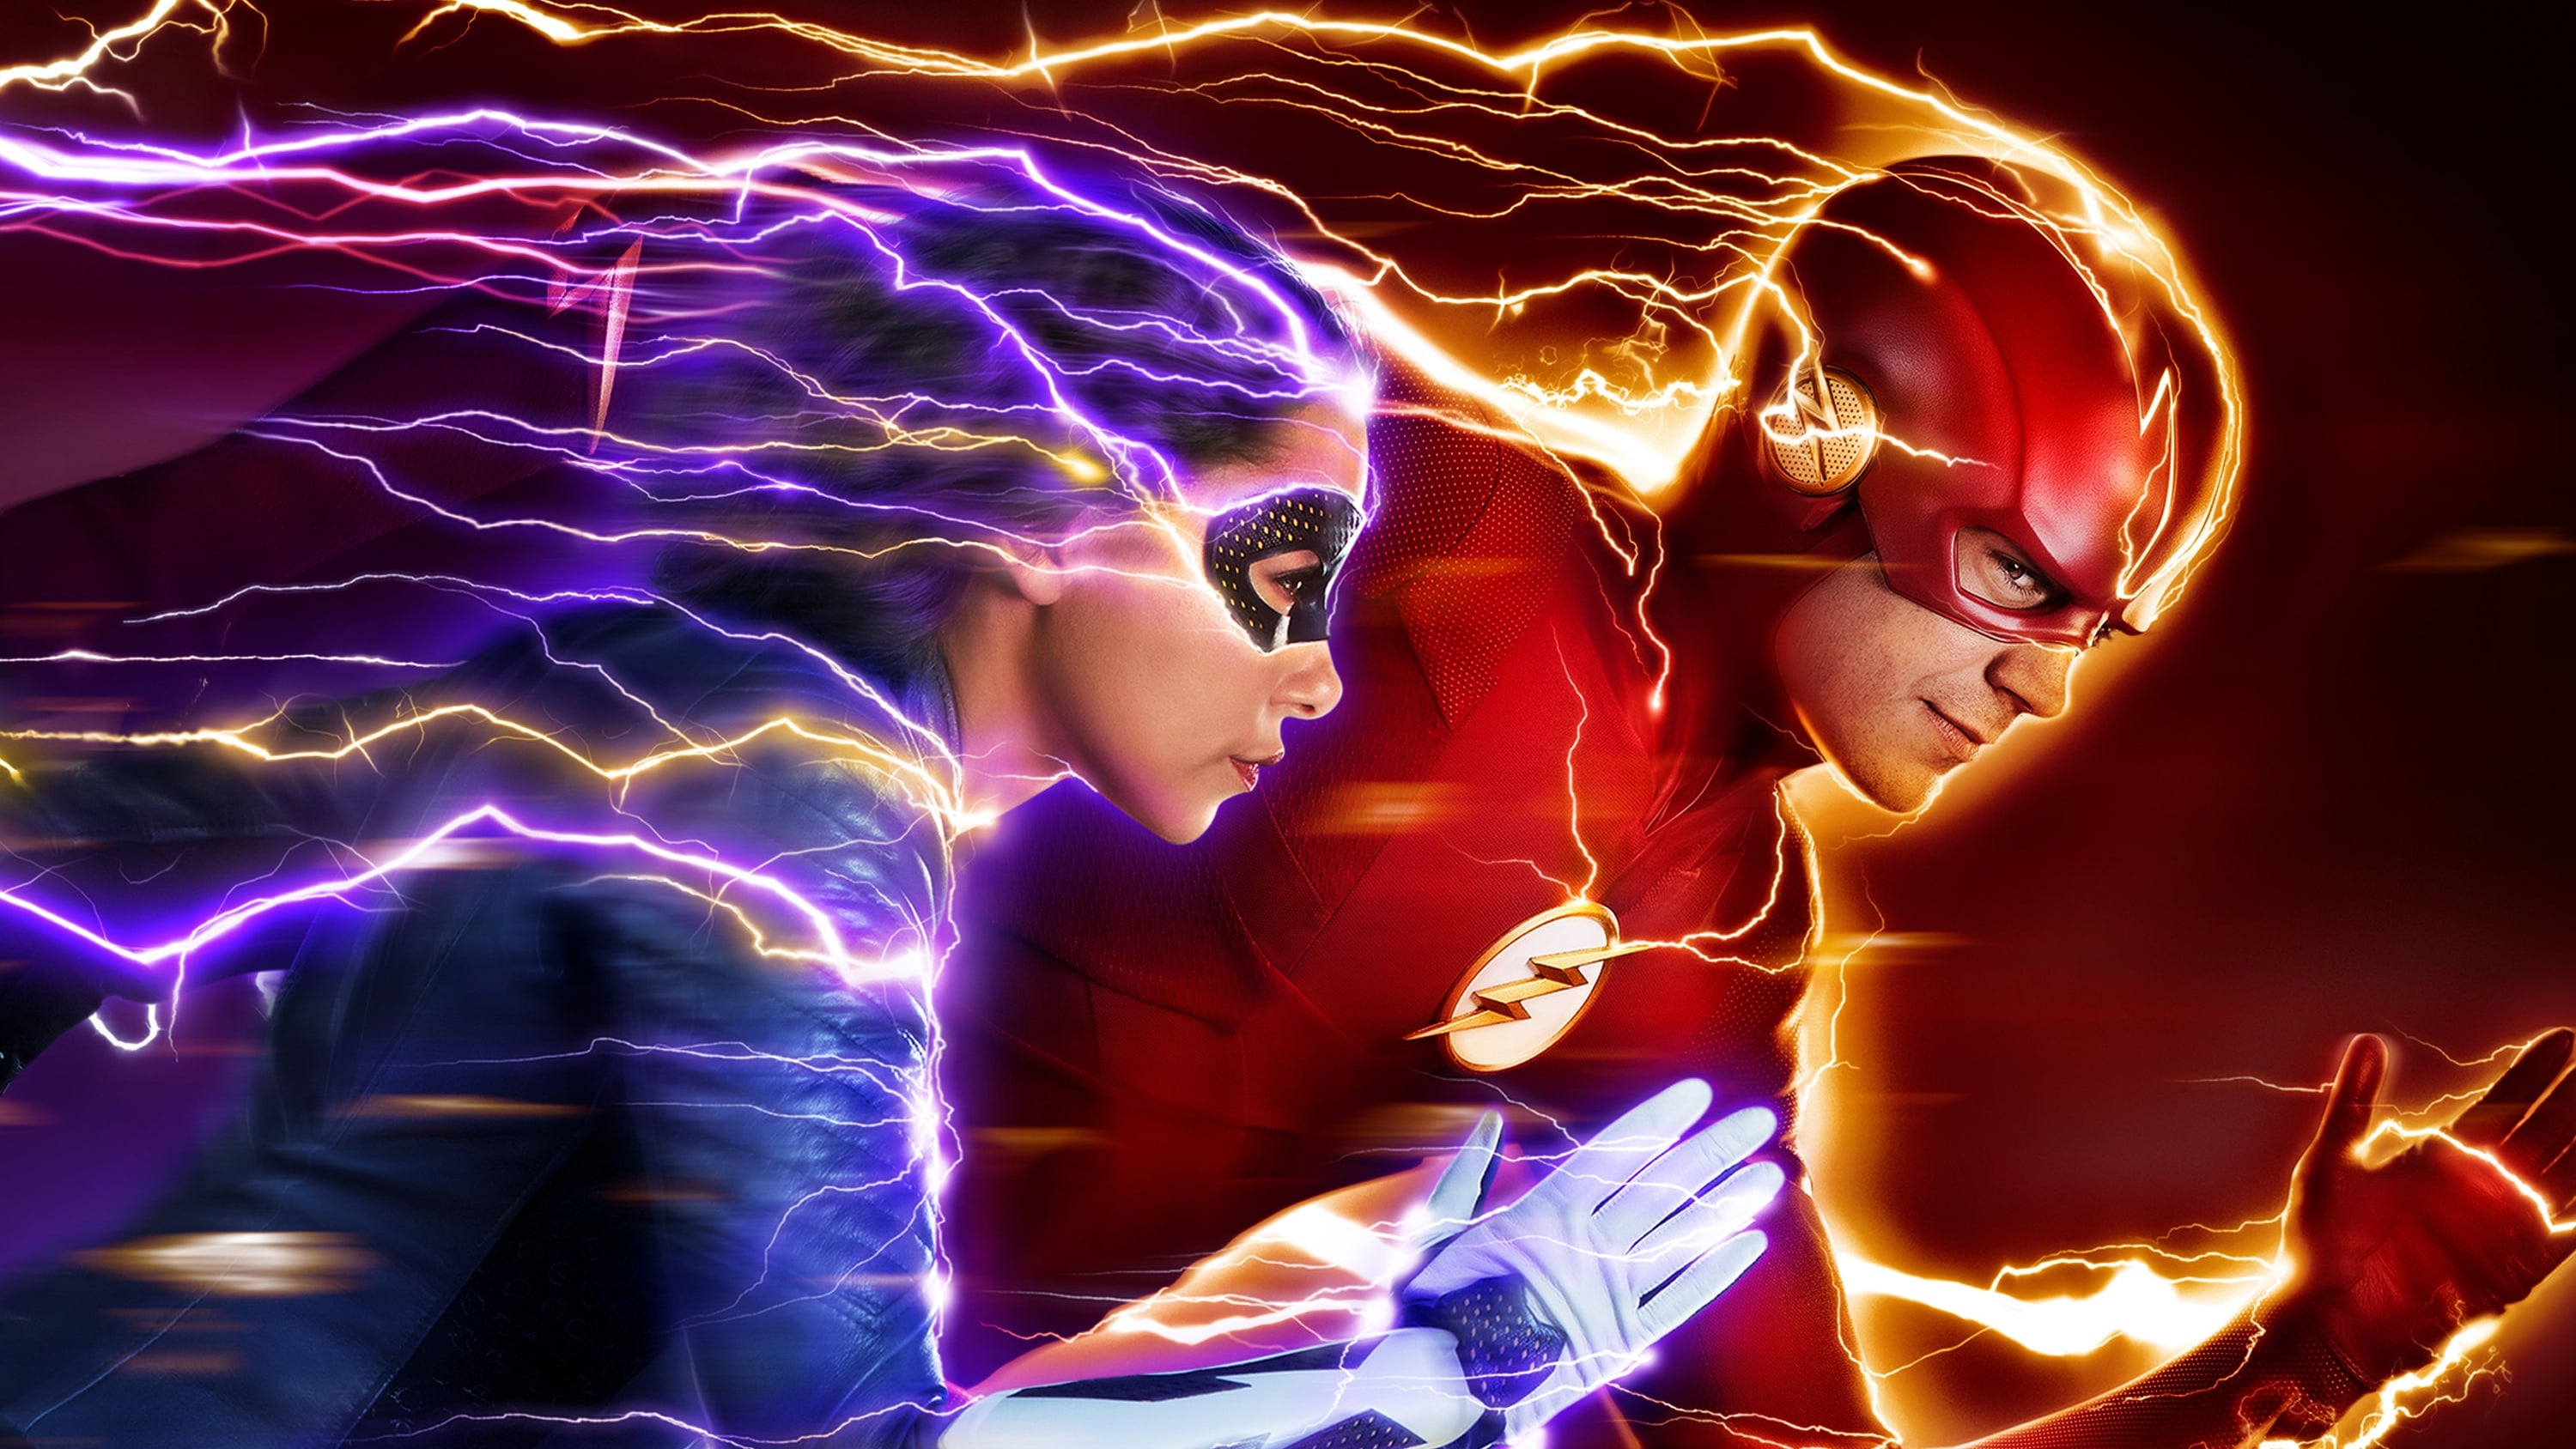 After being struck by lightning, Barry Allen wakes up from his coma to discover he's been given the power of super speed, becoming the Flash, fighting crime in Central City.